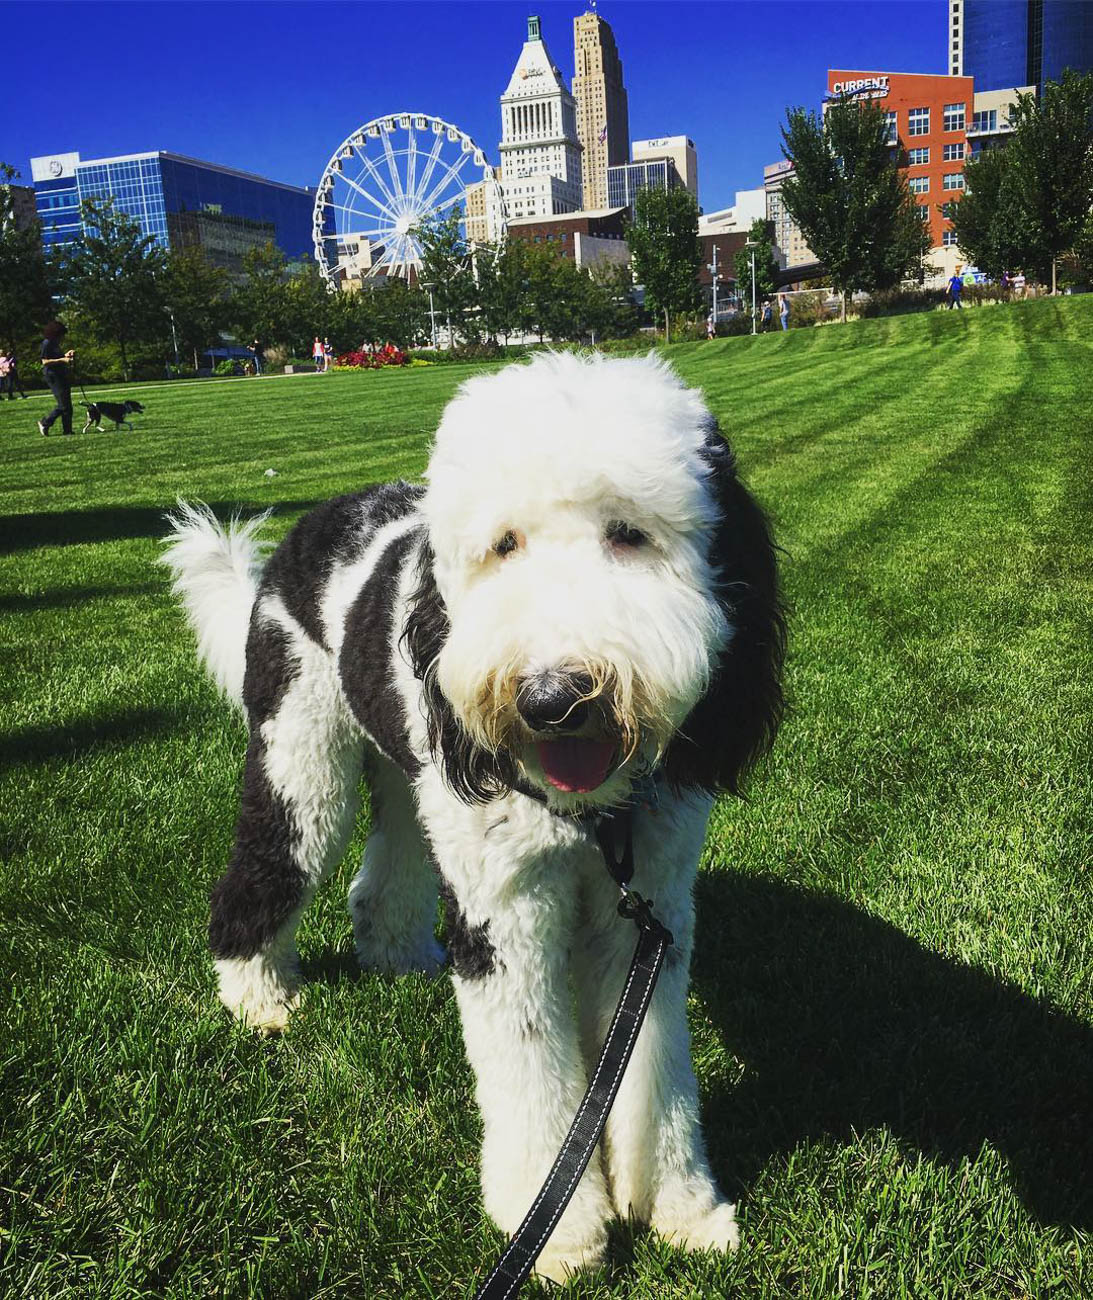 Tom Brady the Sheepdoodle loves to visit Smale Riverfront Park. He's much cuter than the other Tom Brady. / Image courtesy of Instagram user @tombrady_the_sheepadoodle  // Published: 11.28.18